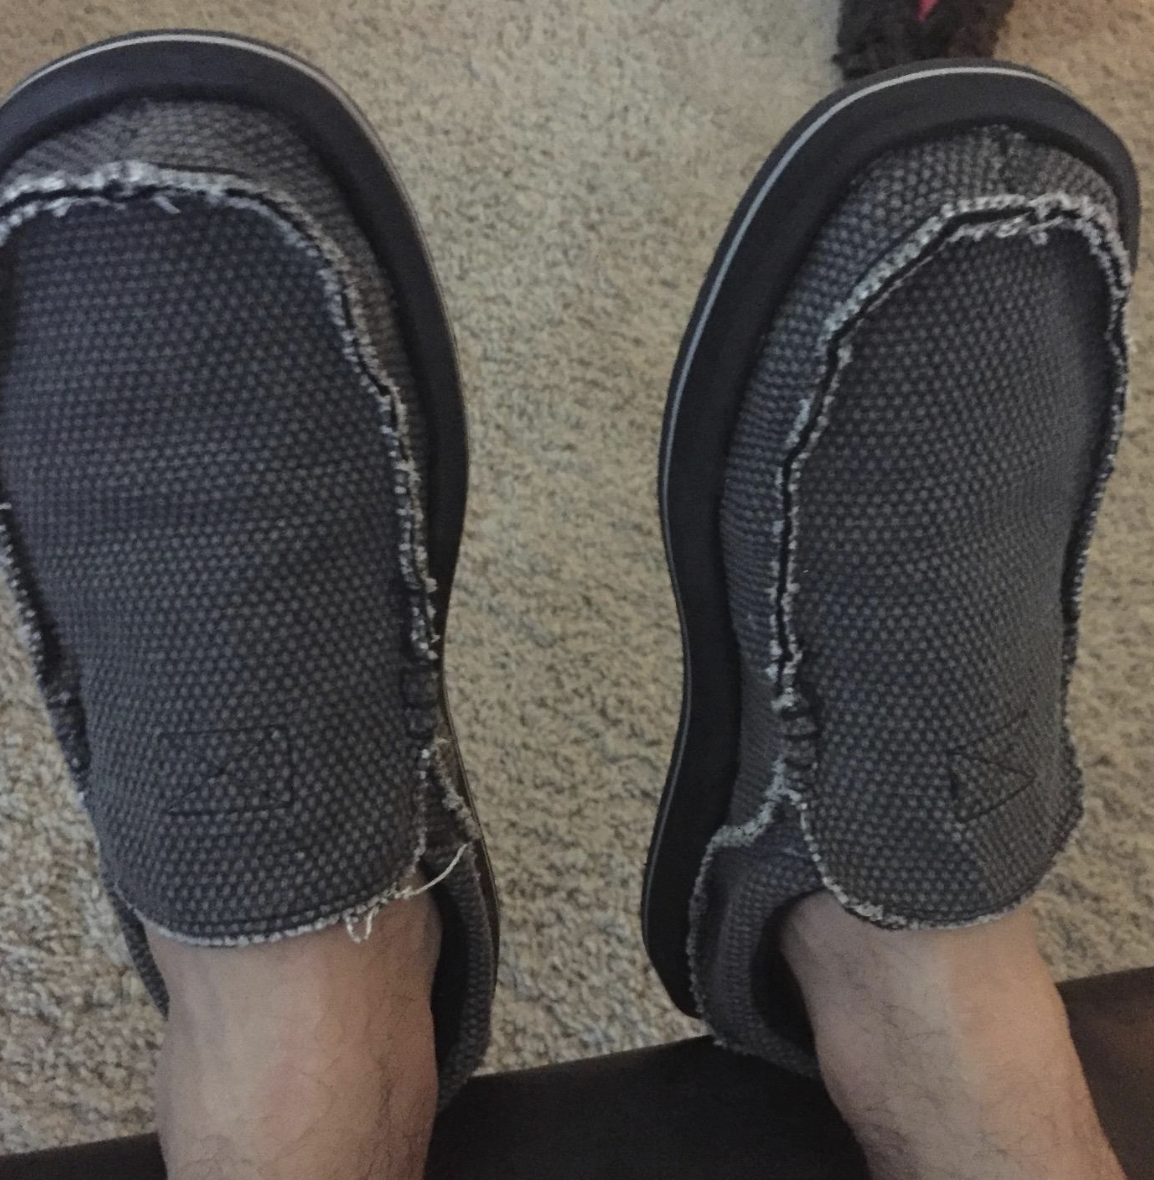 reviewer's feet wearing the shoes in gray. they have a loafer style so they are flat and low-top but cover the foot entirely.